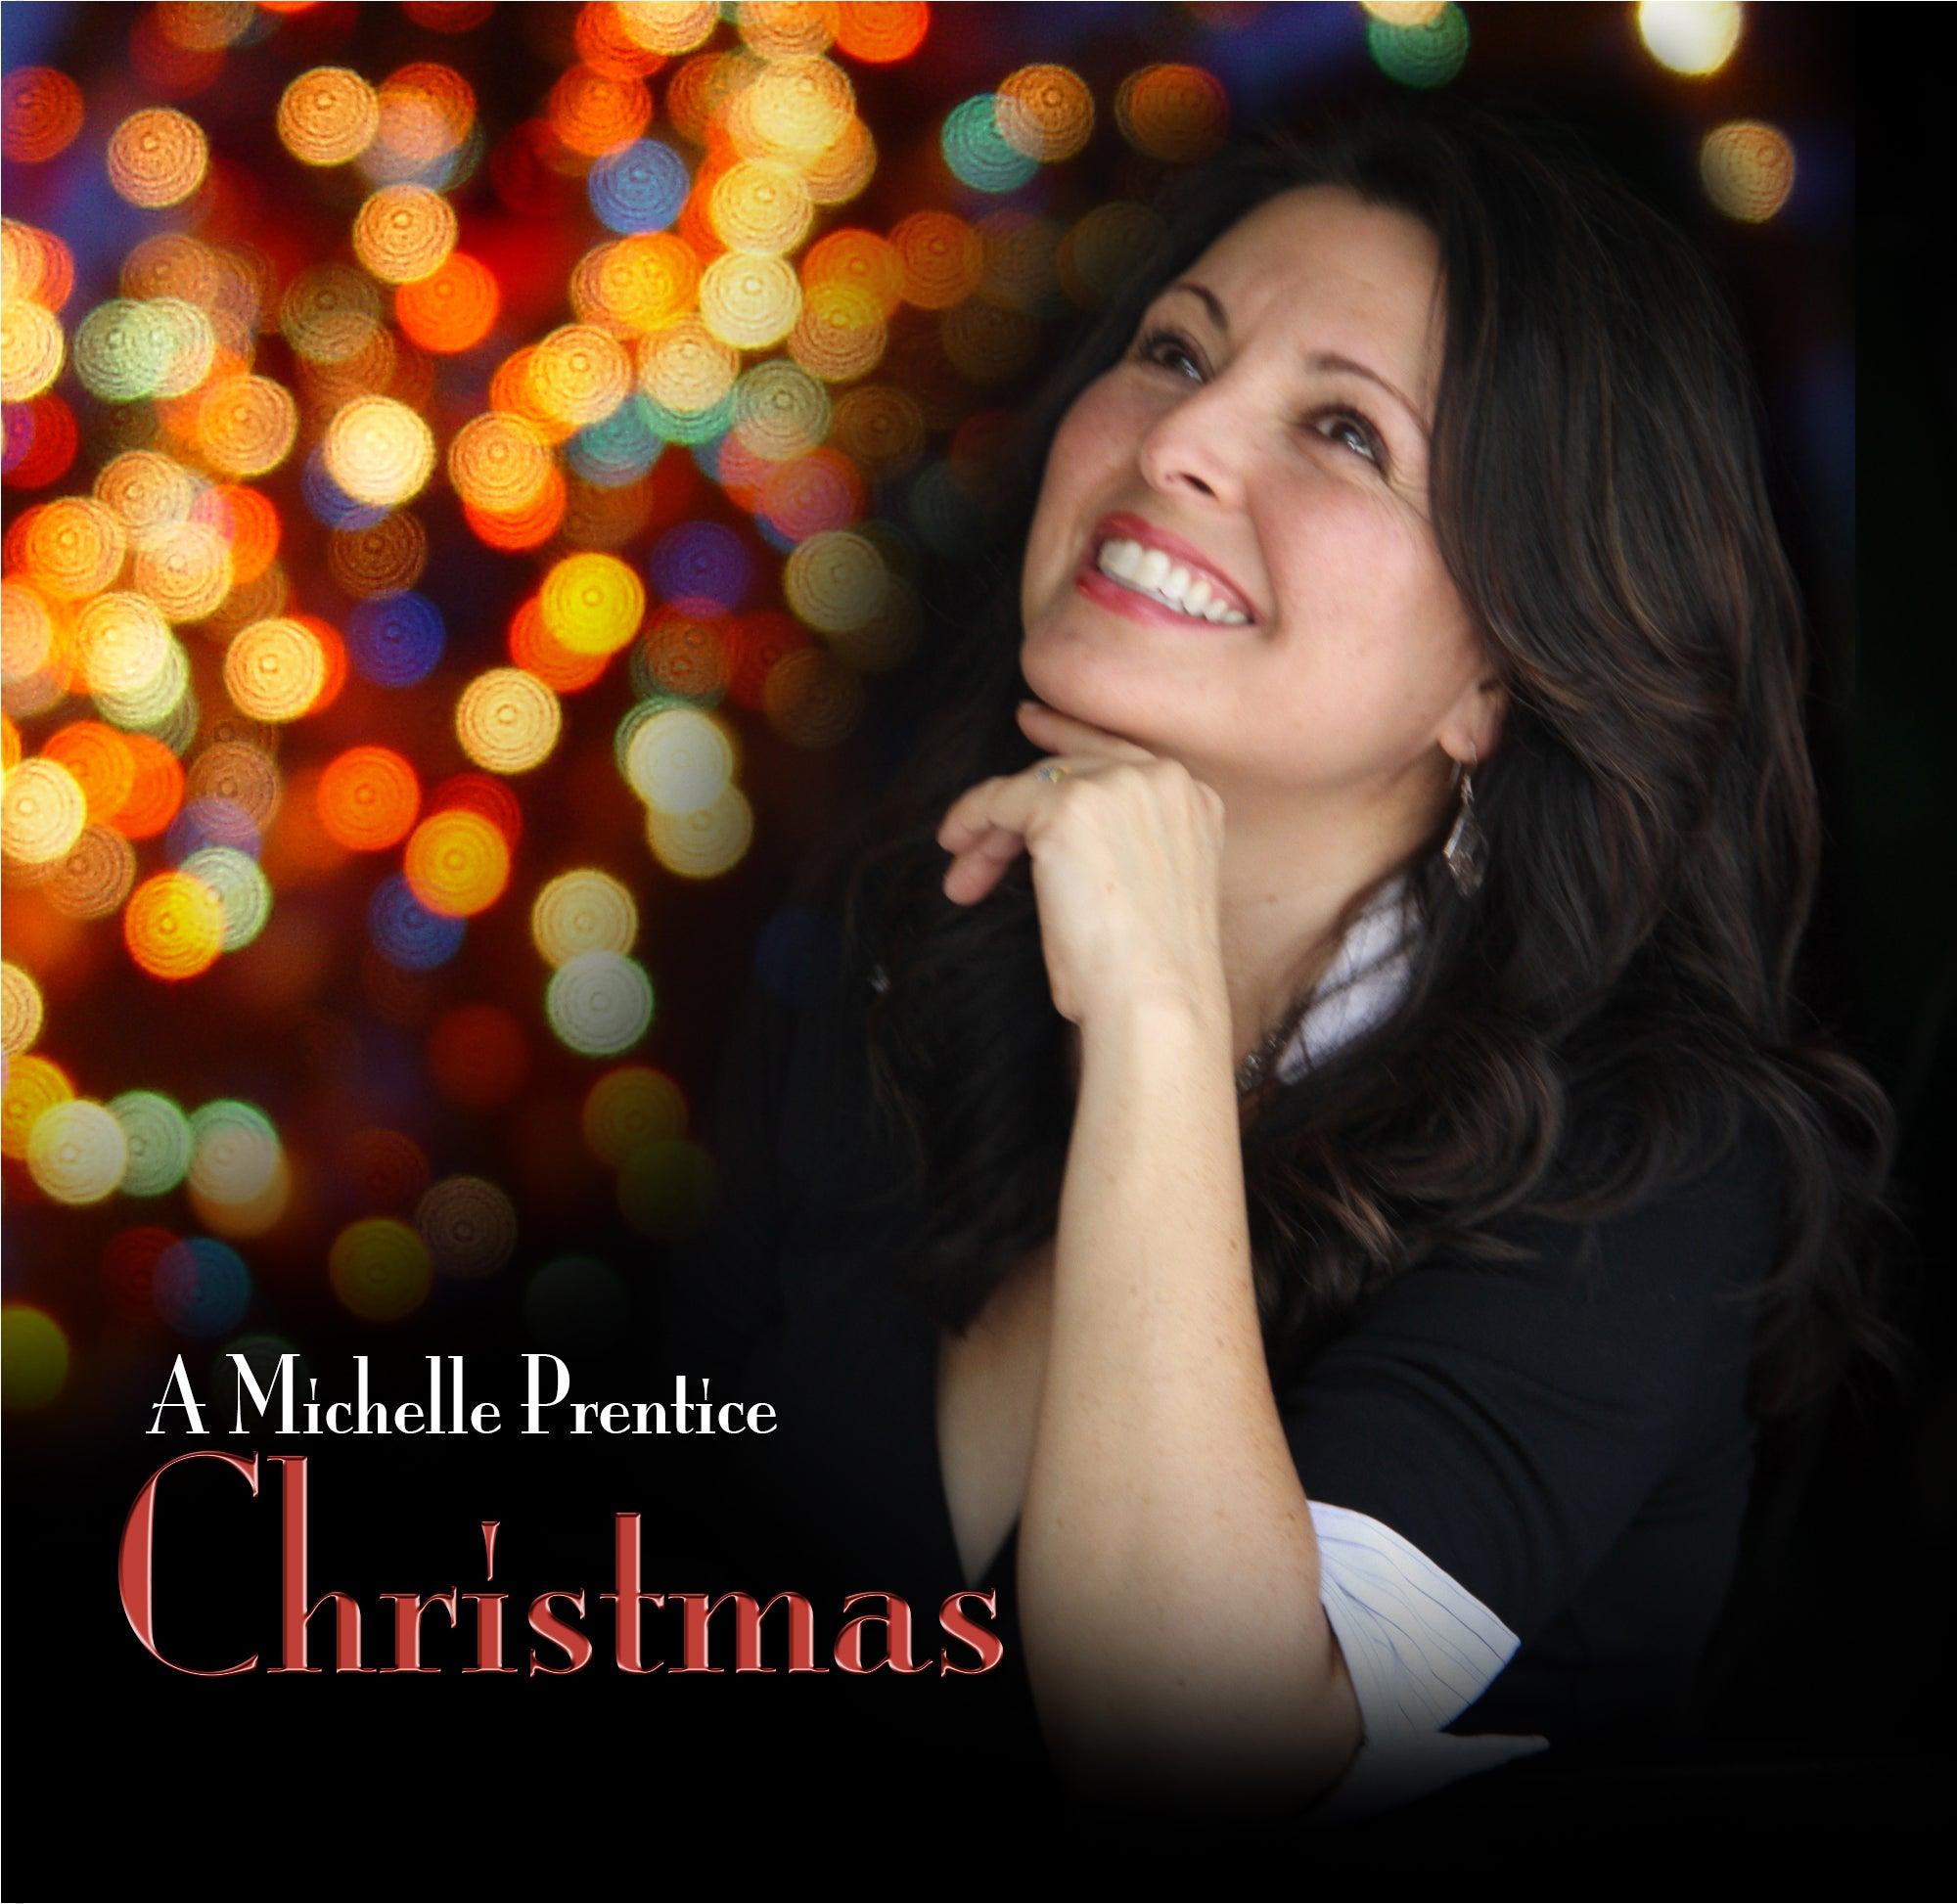 """""""Have Yourself A Merry Little Christmas"""" by Michelle Prentice (Album: A Michelle Prentice Christmas)"""